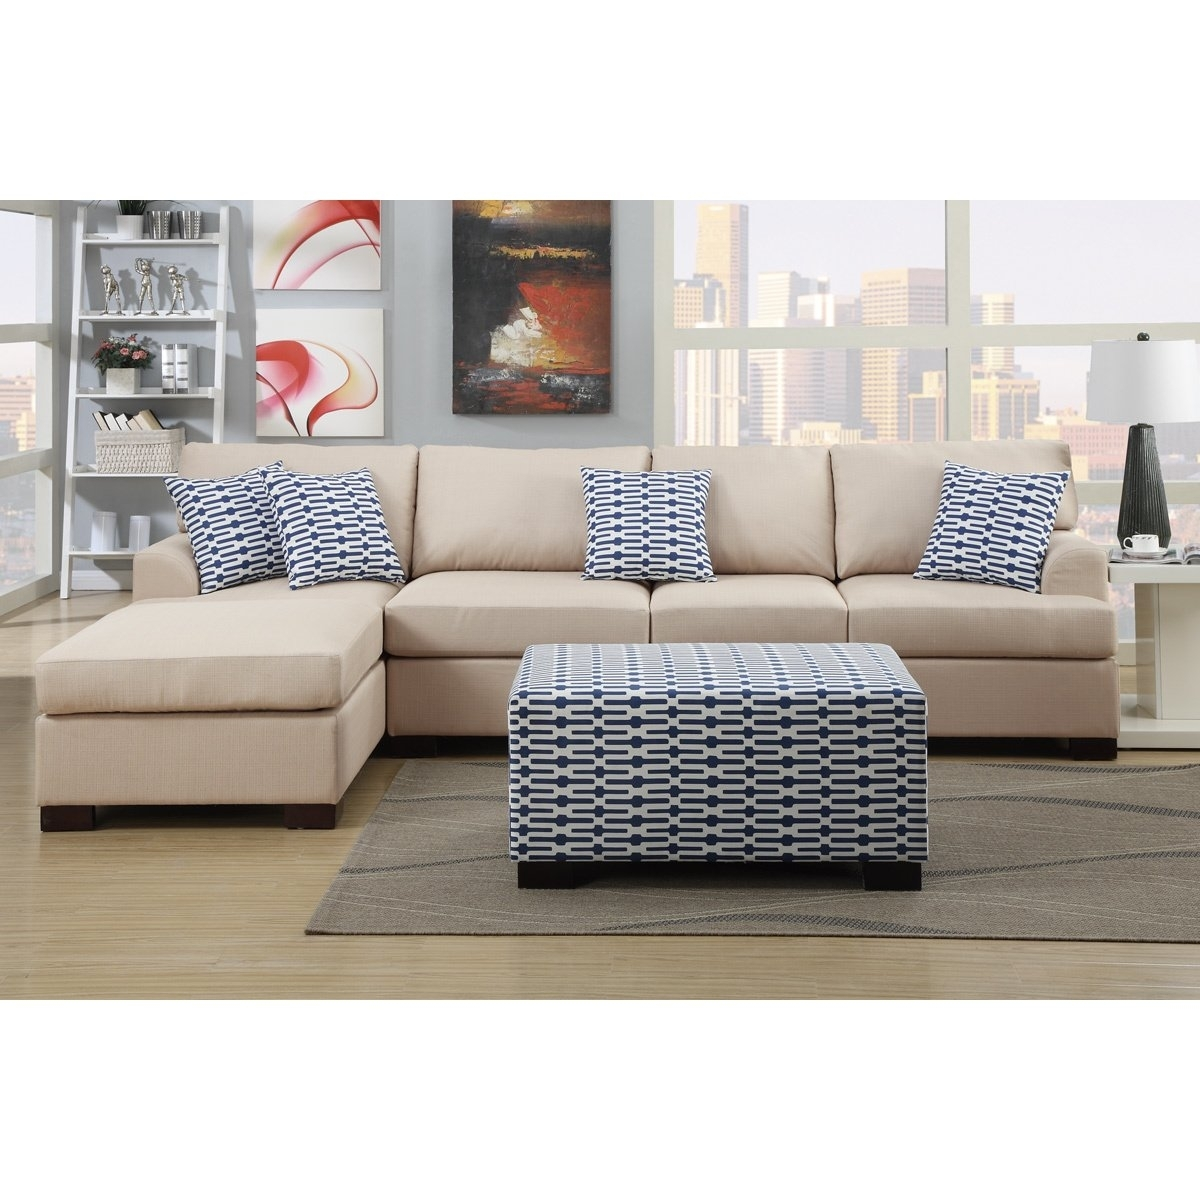 Shop Moss Large 2 Piece Blended Linen Sectional Sofa With Matching With Regard To Adeline 3 Piece Sectionals (Image 23 of 25)